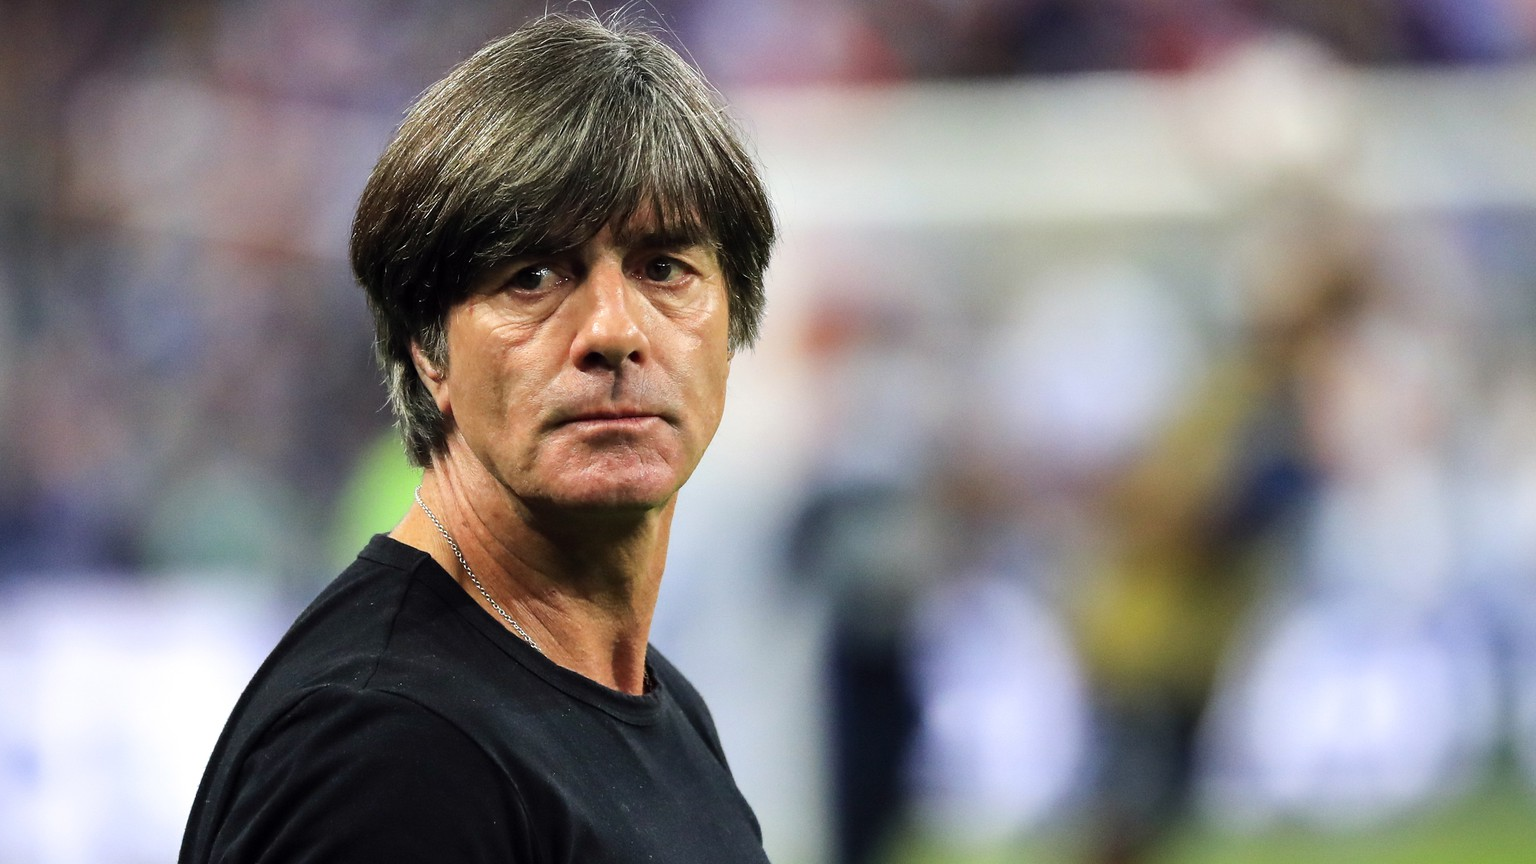 epa07098056 German's head coach Joachim Loew prior the UEFA Nations League soccer match between France and Germany in Paris, France on 16 October 2018.  EPA/Christophe Petit-Tesson